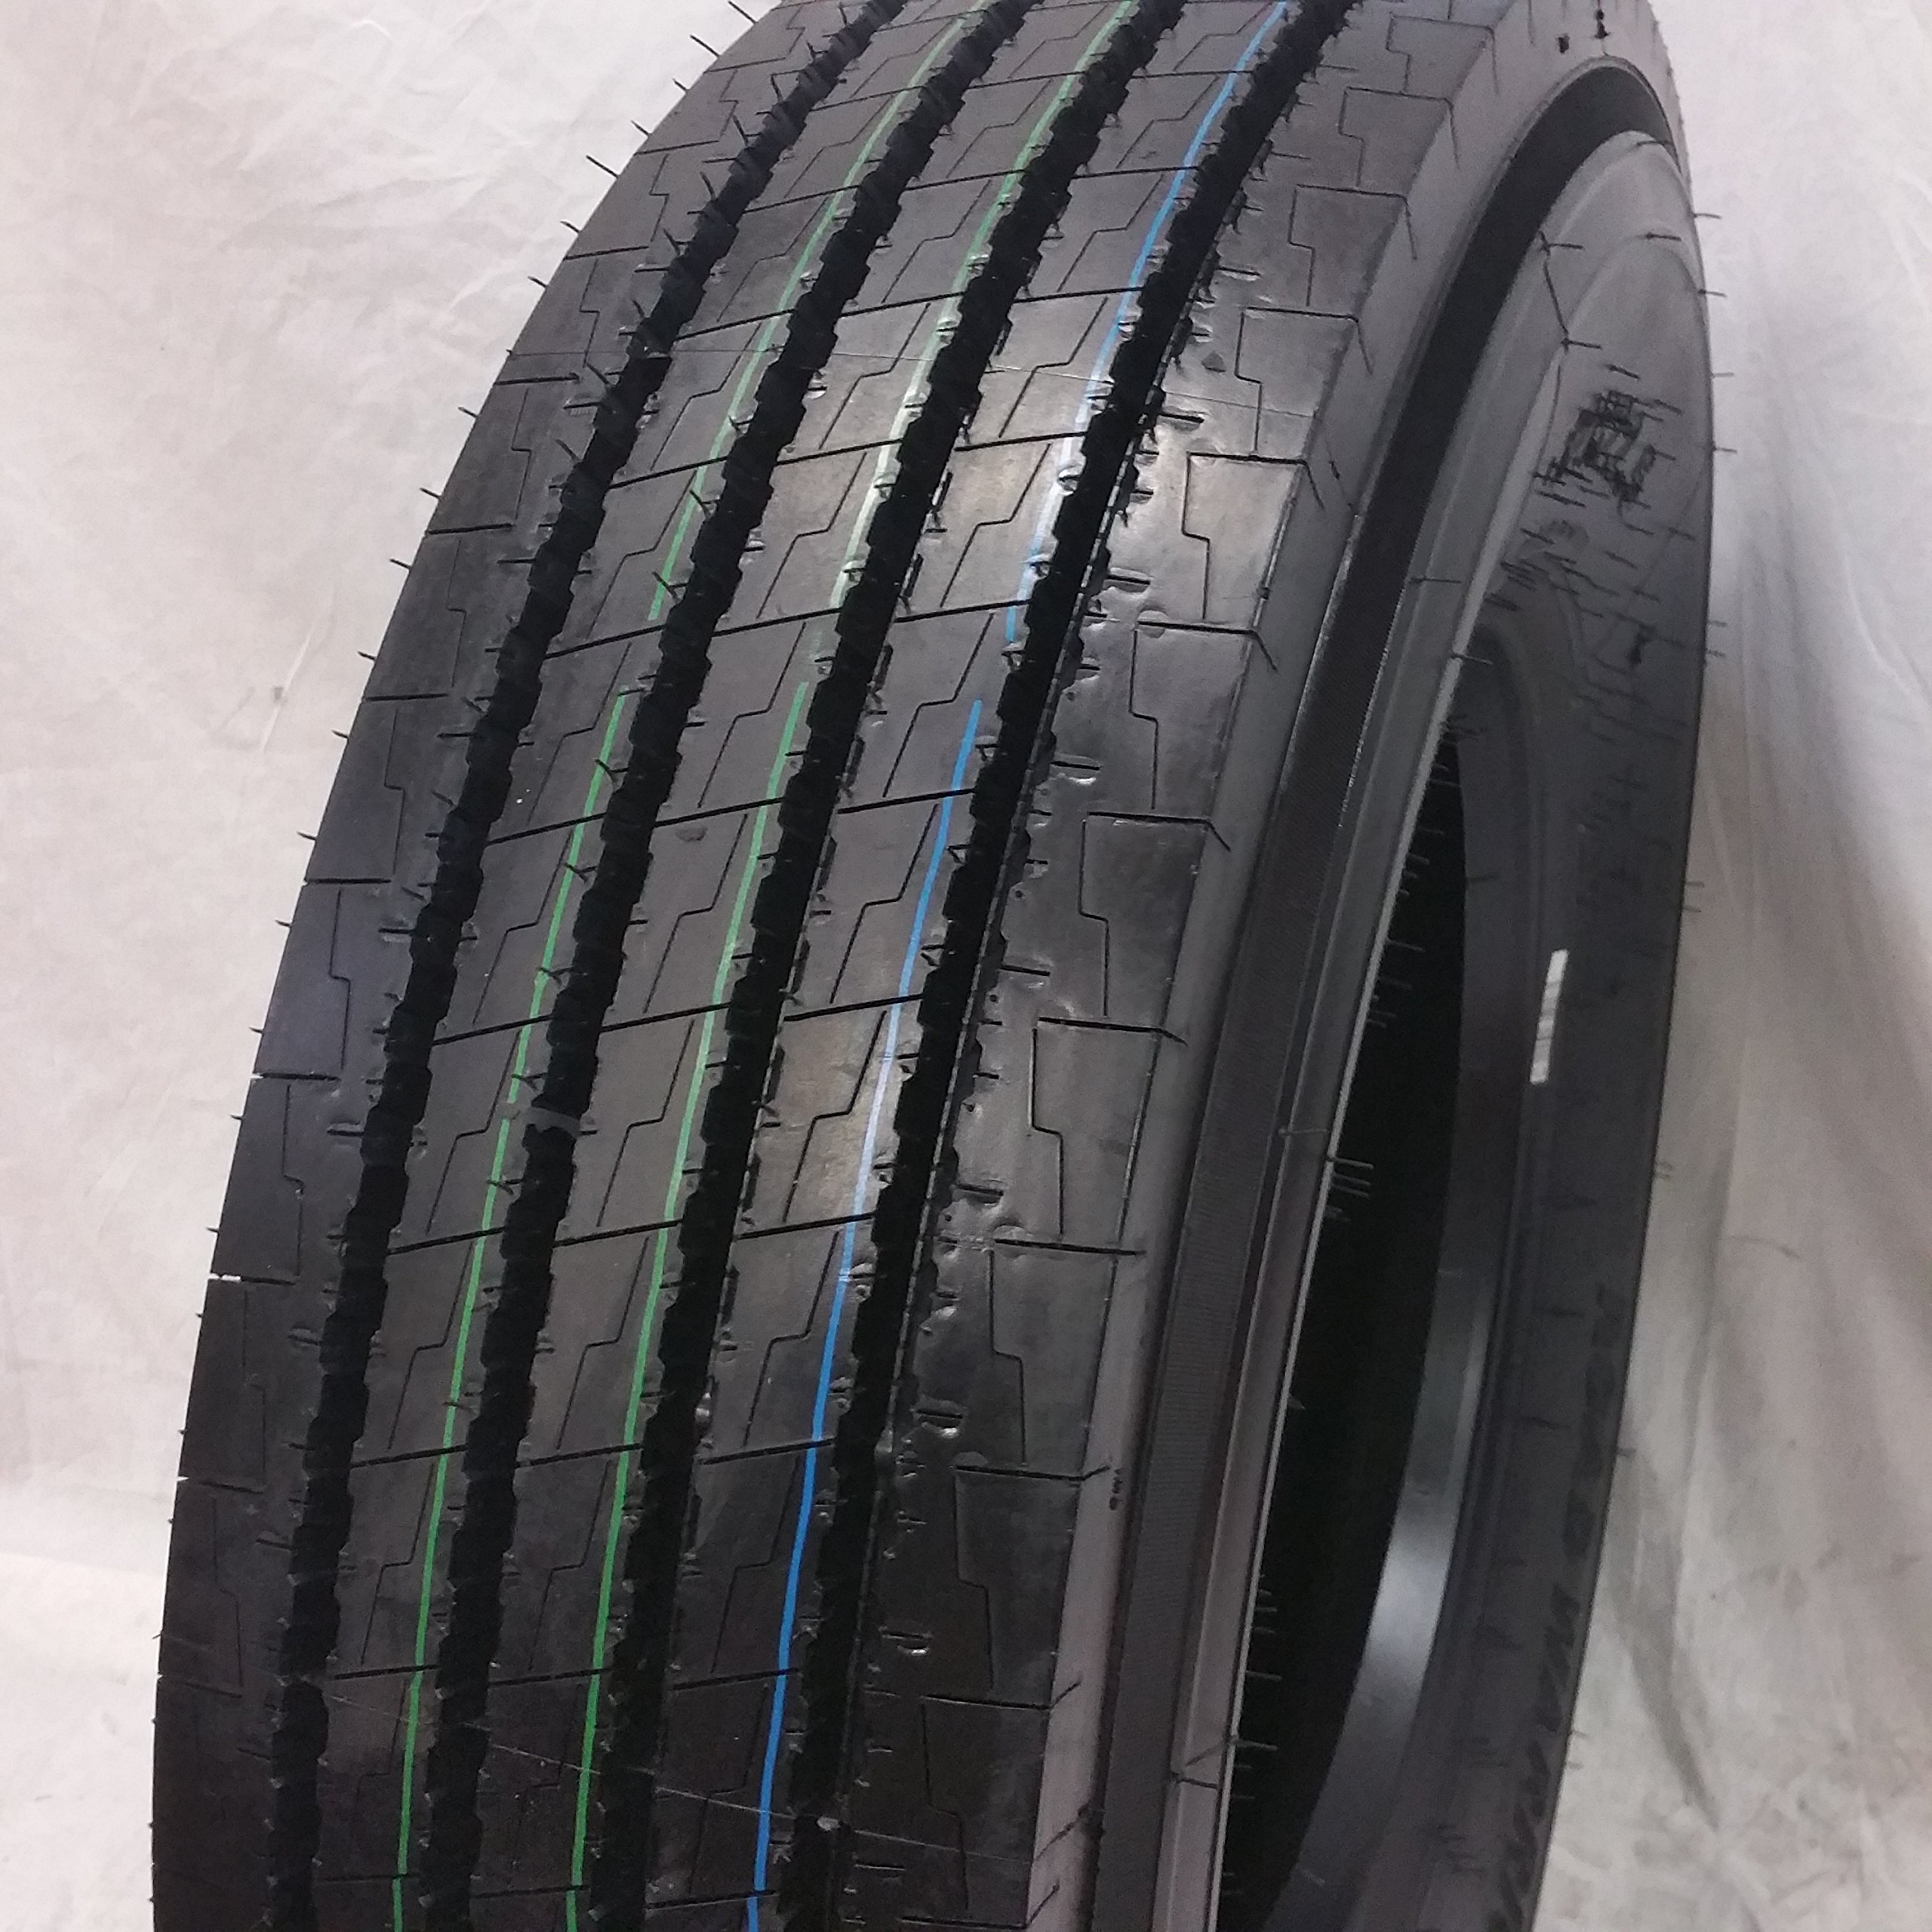 11R24.5 ROAD WARRIOR RADIAL (2- STEER TIRES) 16 PLY RATING by ROAD WARRIOR (Image #3)